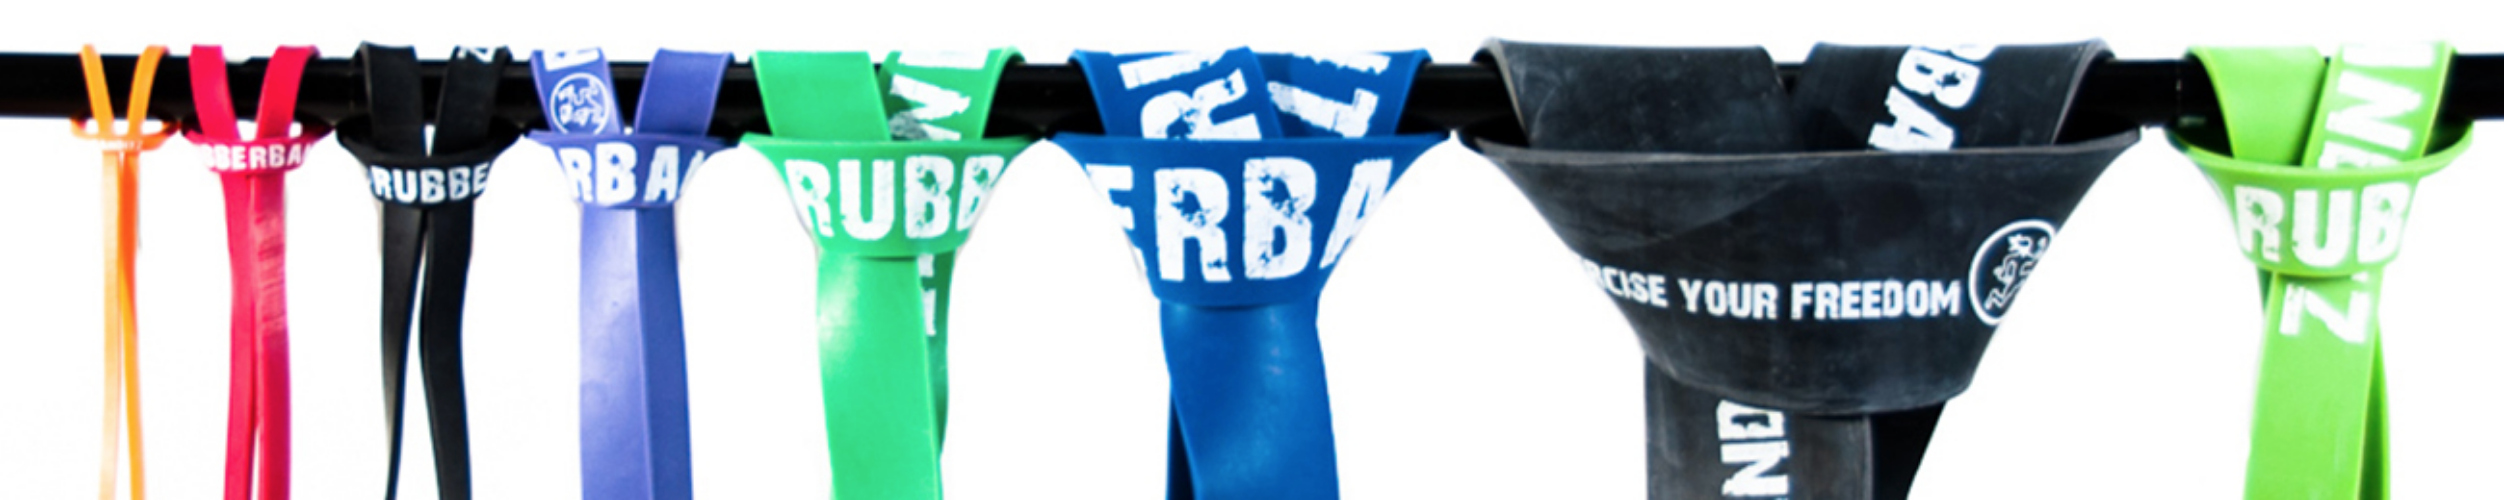 Rubberbanditz specializes in resistance bands and body weight training accessories